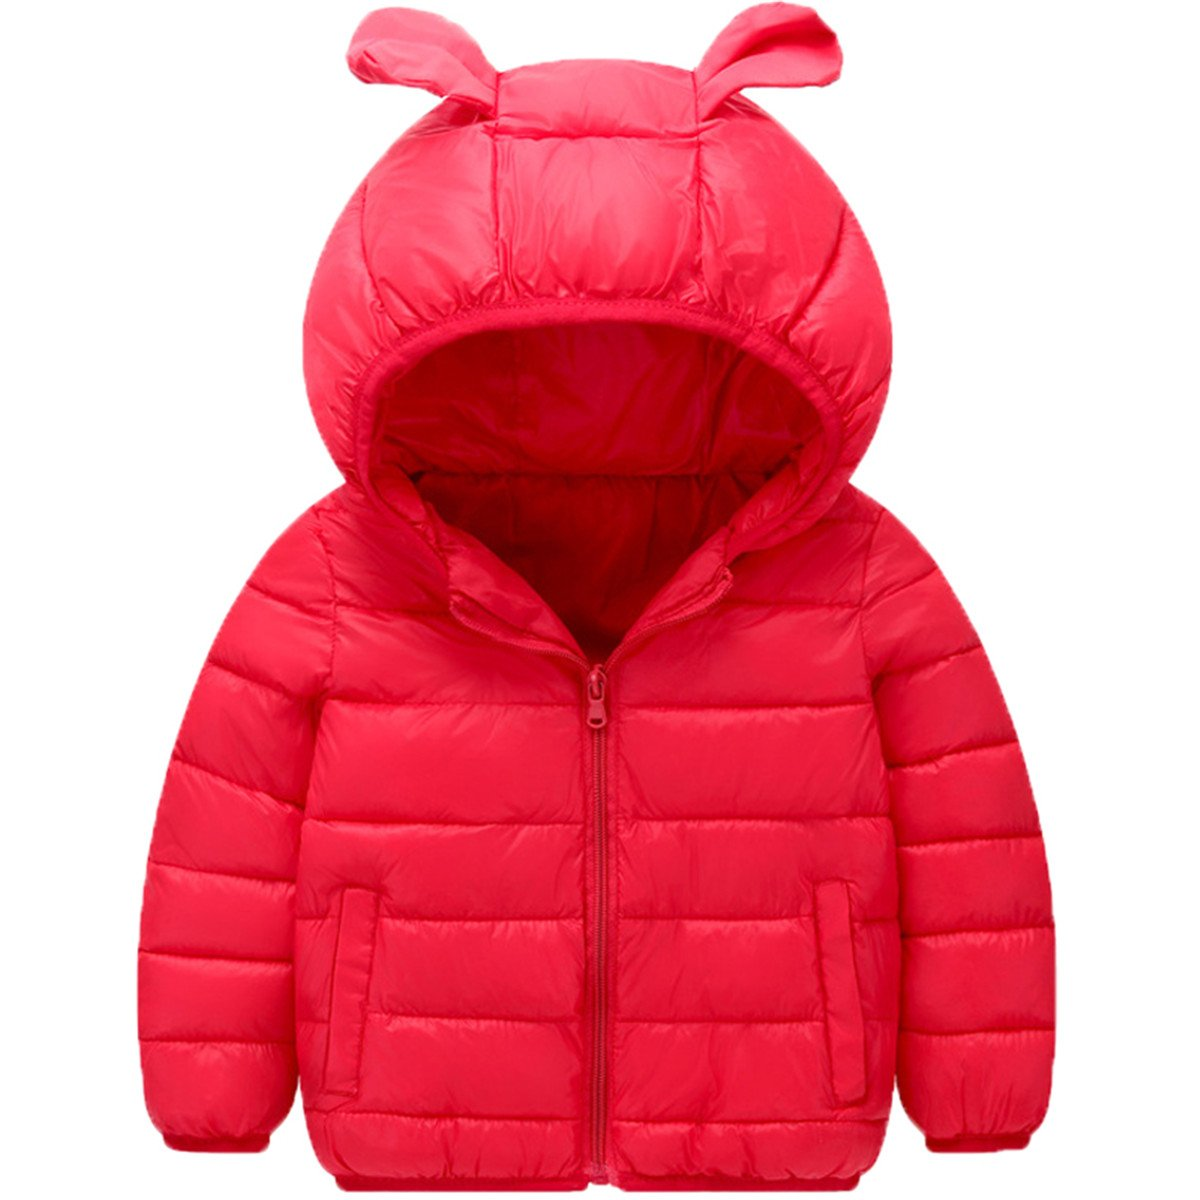 Little Boys Girls Kids Lightweight Puffer Down Bear Ears Hooded Coat Jackets YURONTJKO1791